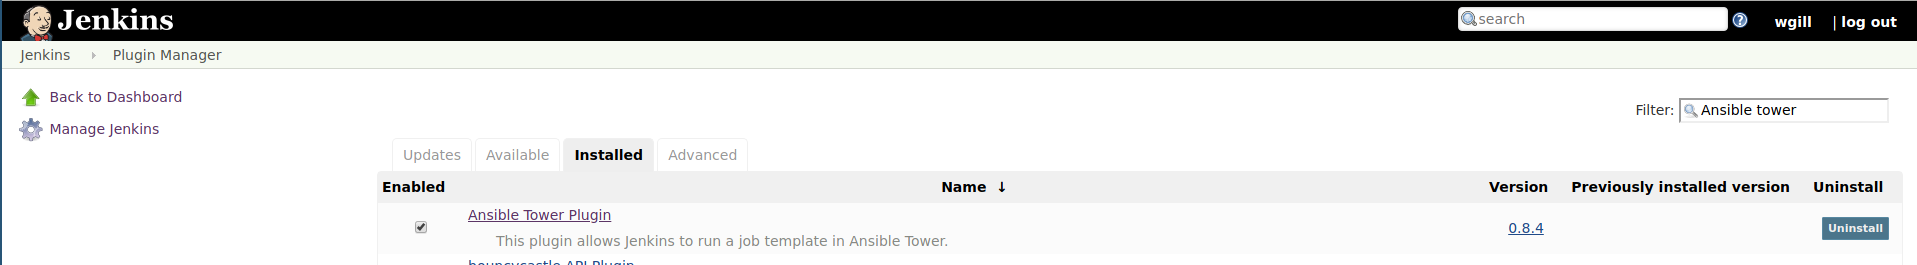 jenkins_ansible_tower_plugin.png